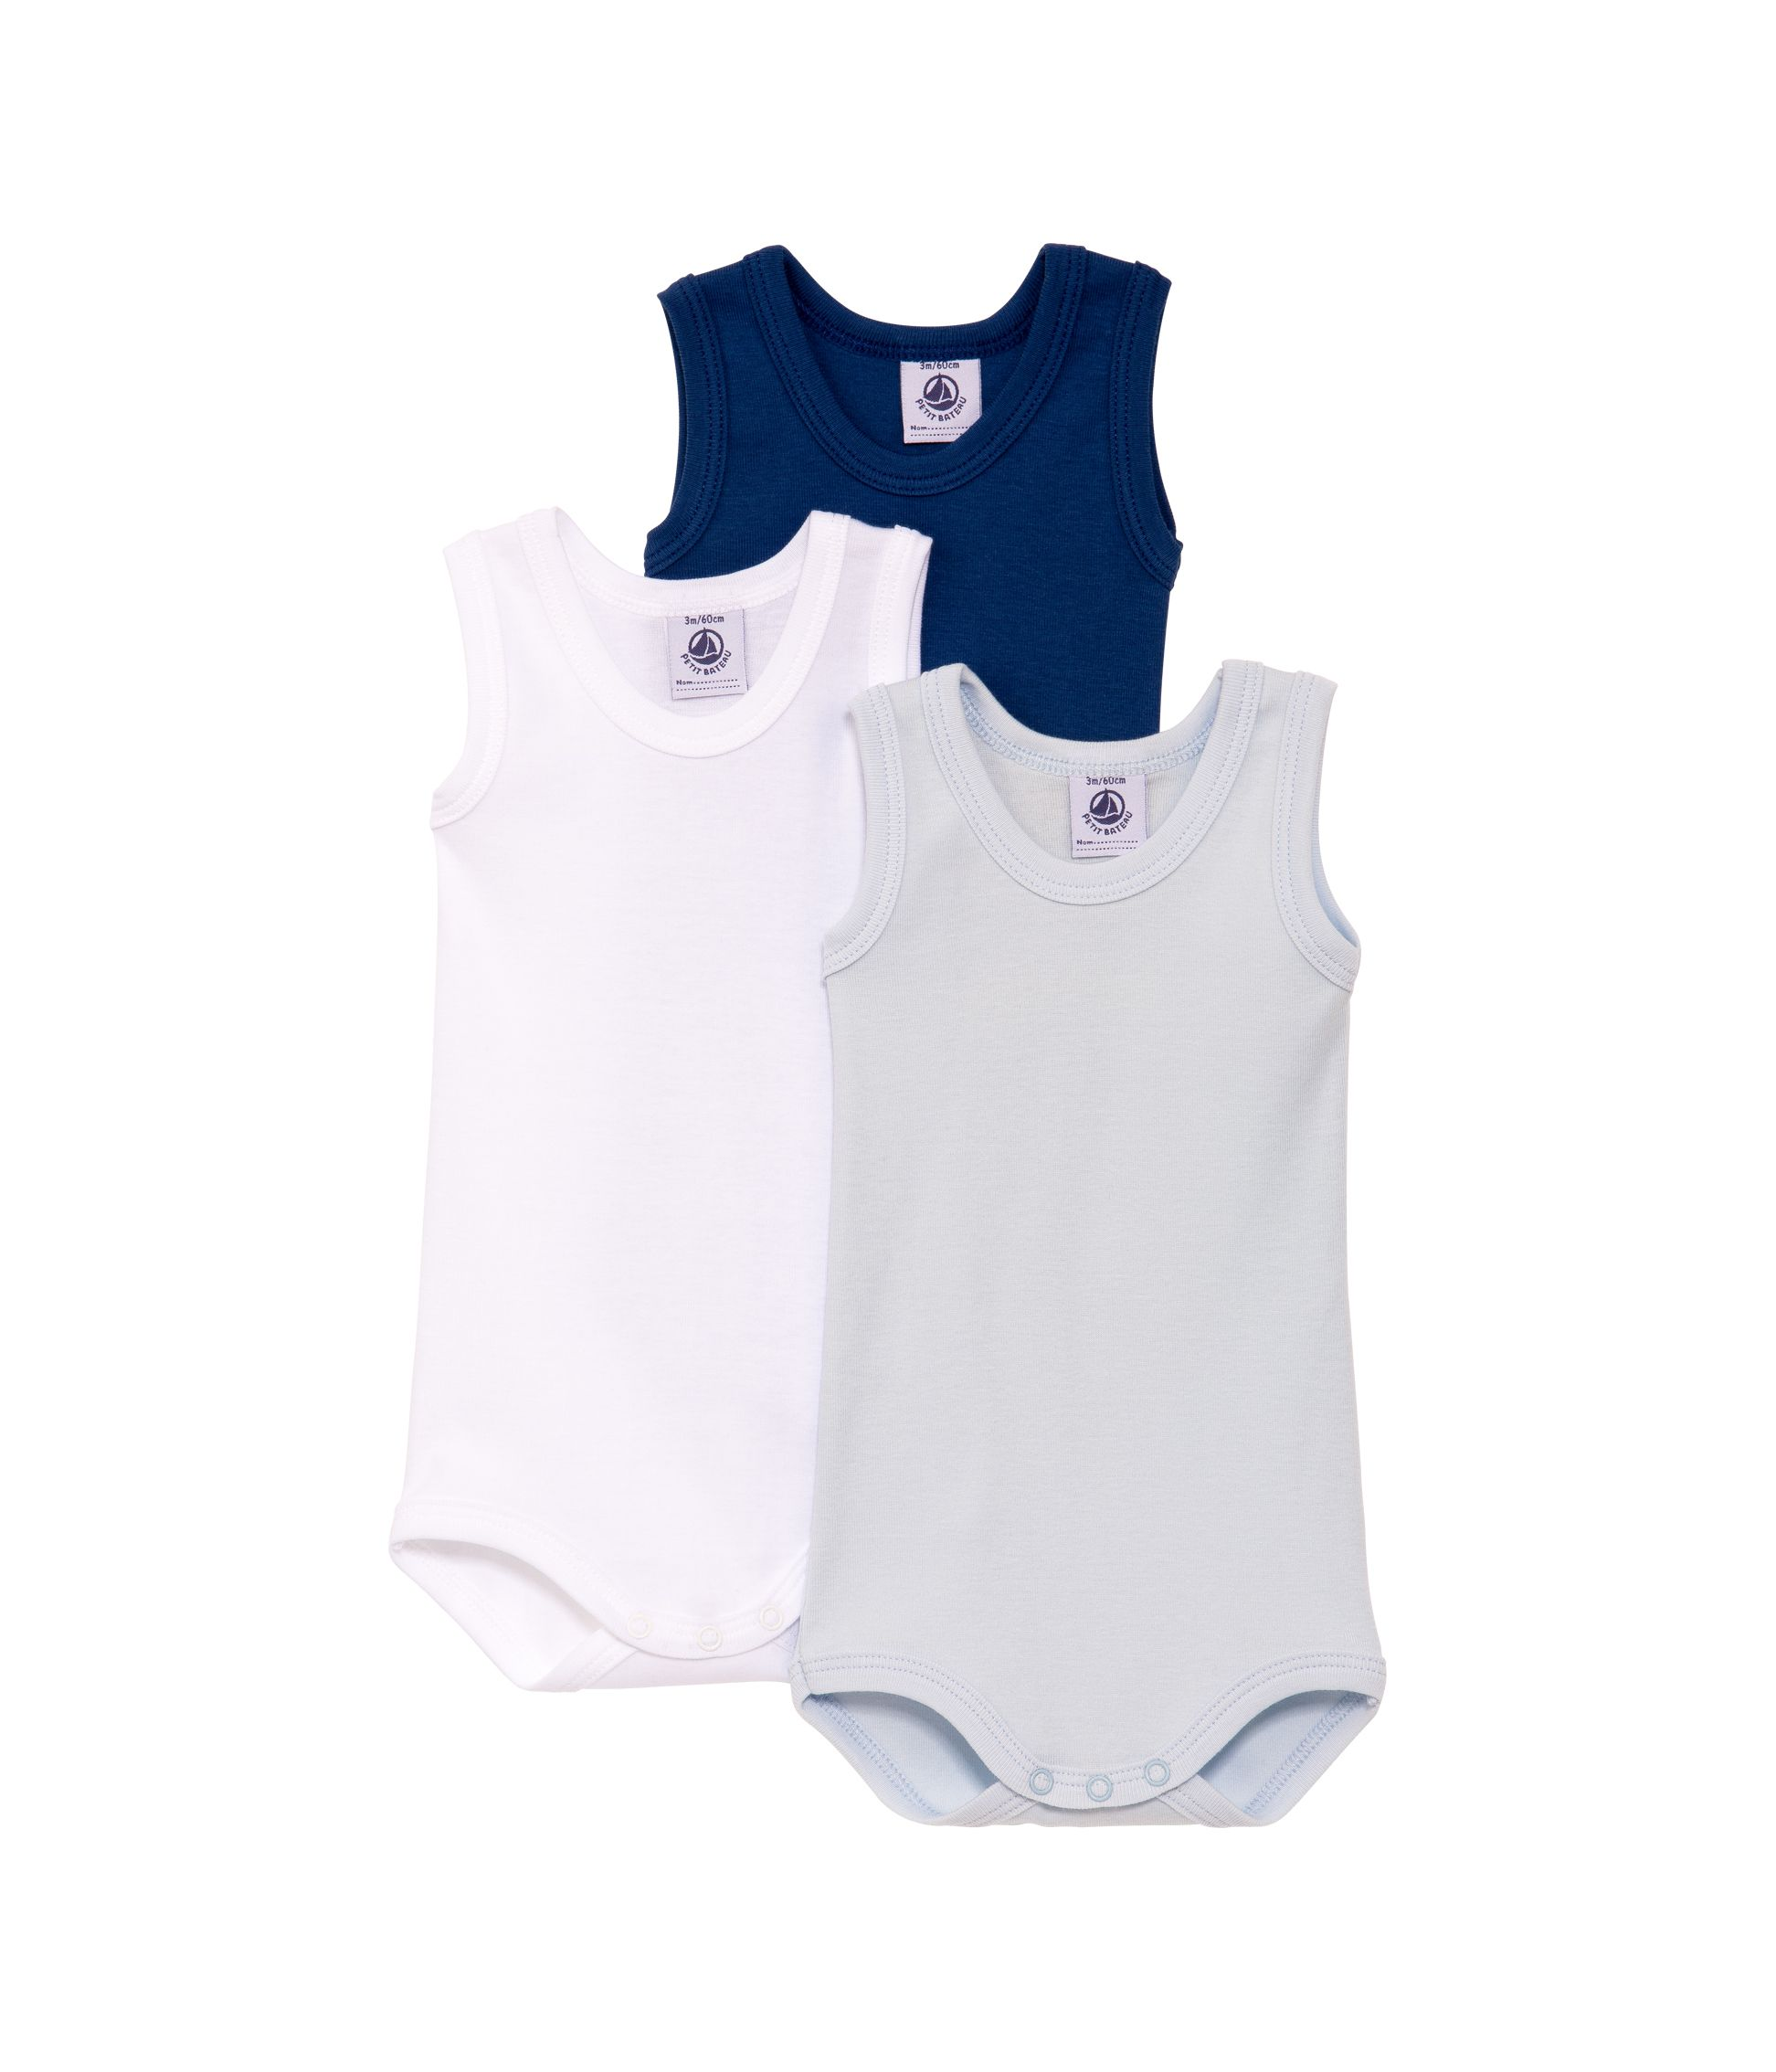 Baby boys 3 pack of sleeveless bodysuits